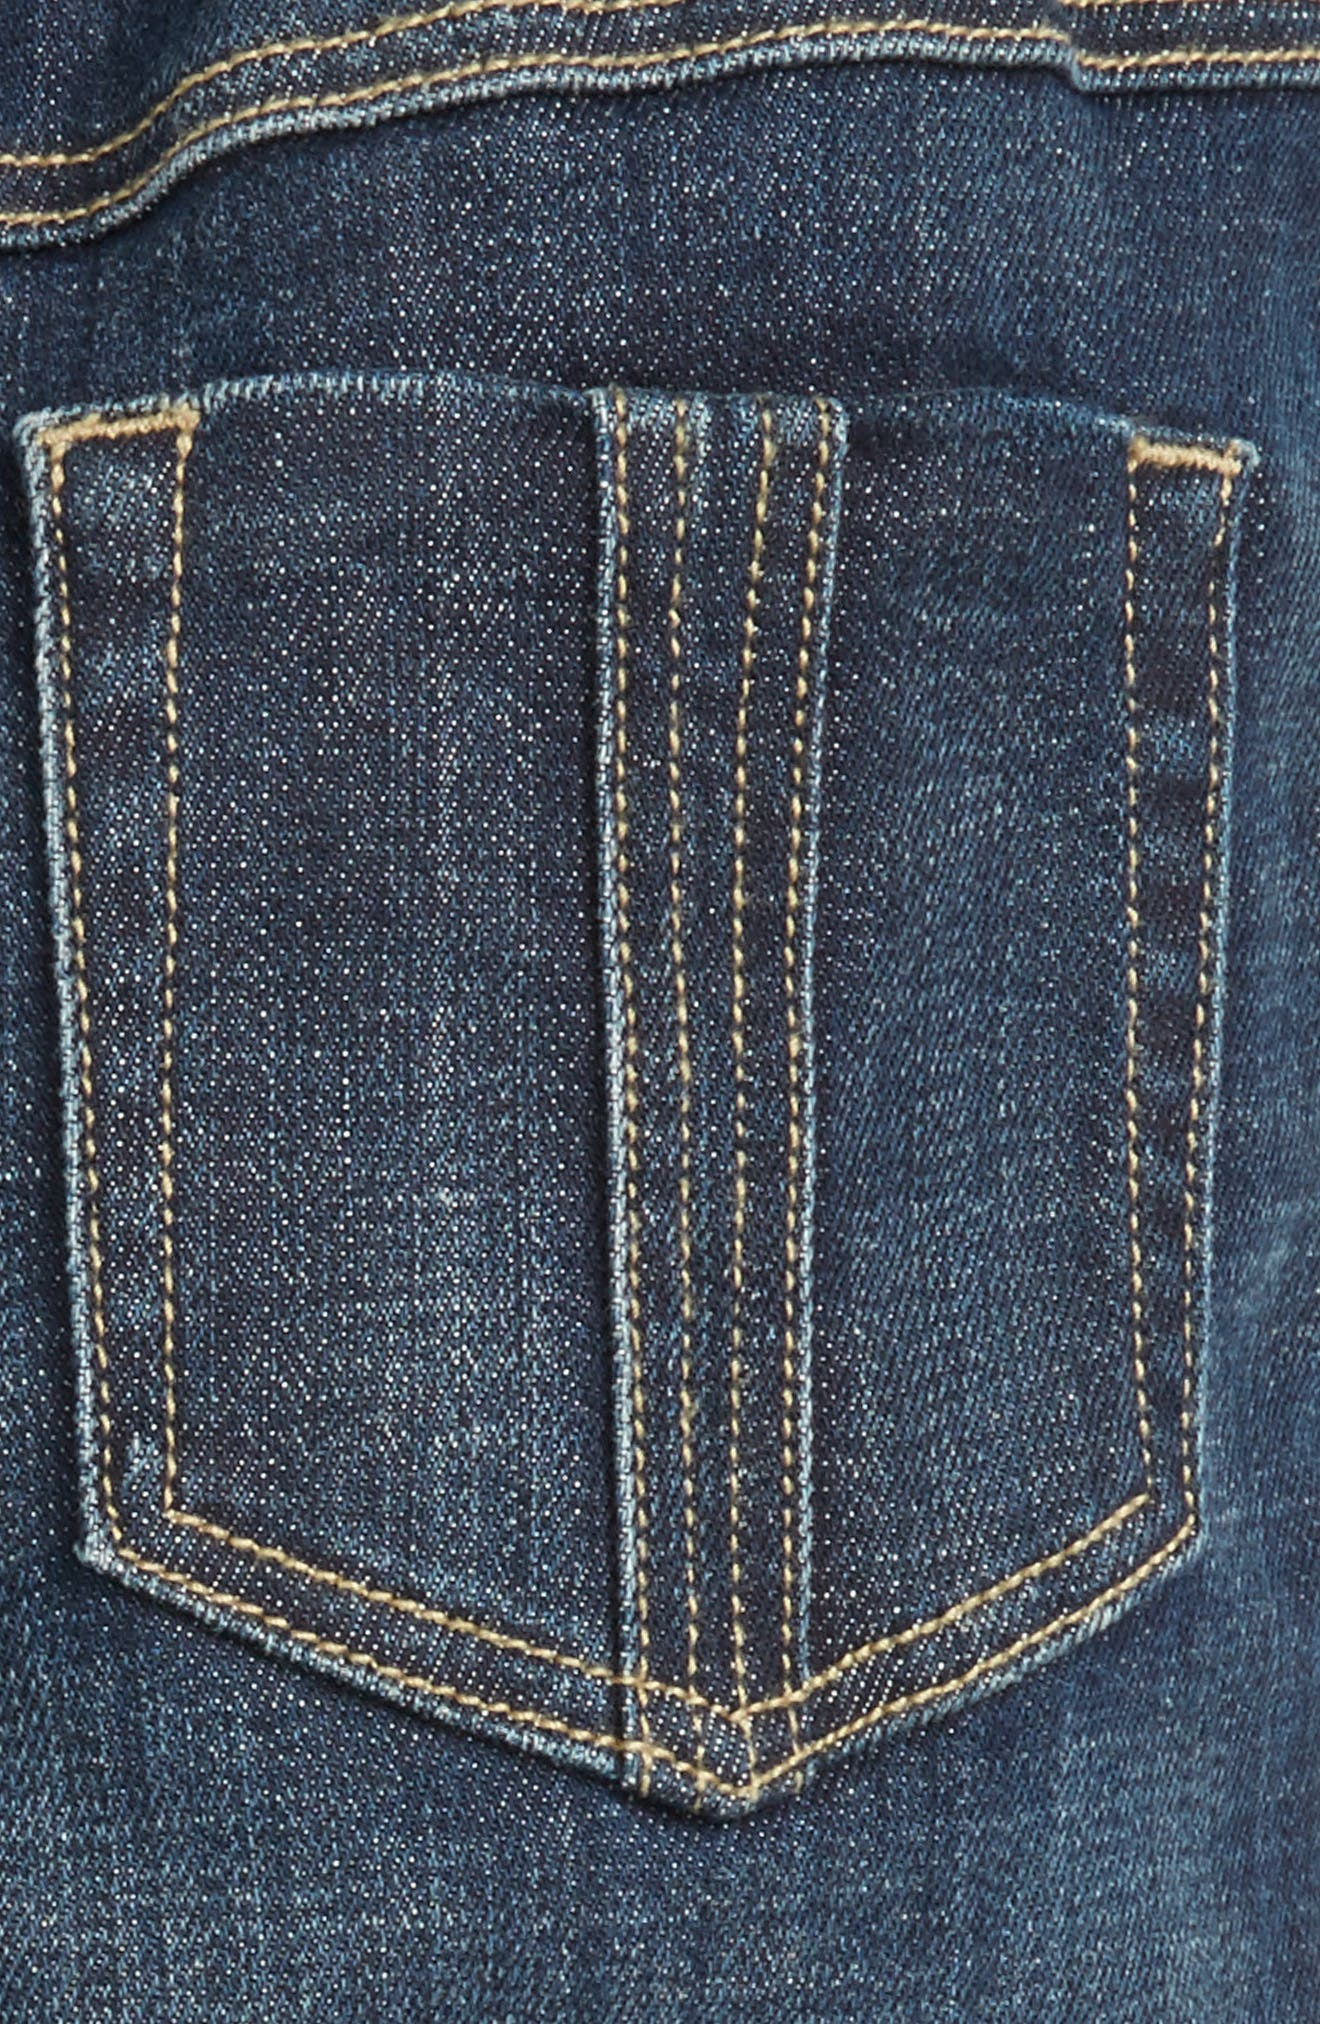 Pierre Check Lined Jeans,                             Alternate thumbnail 3, color,                             400